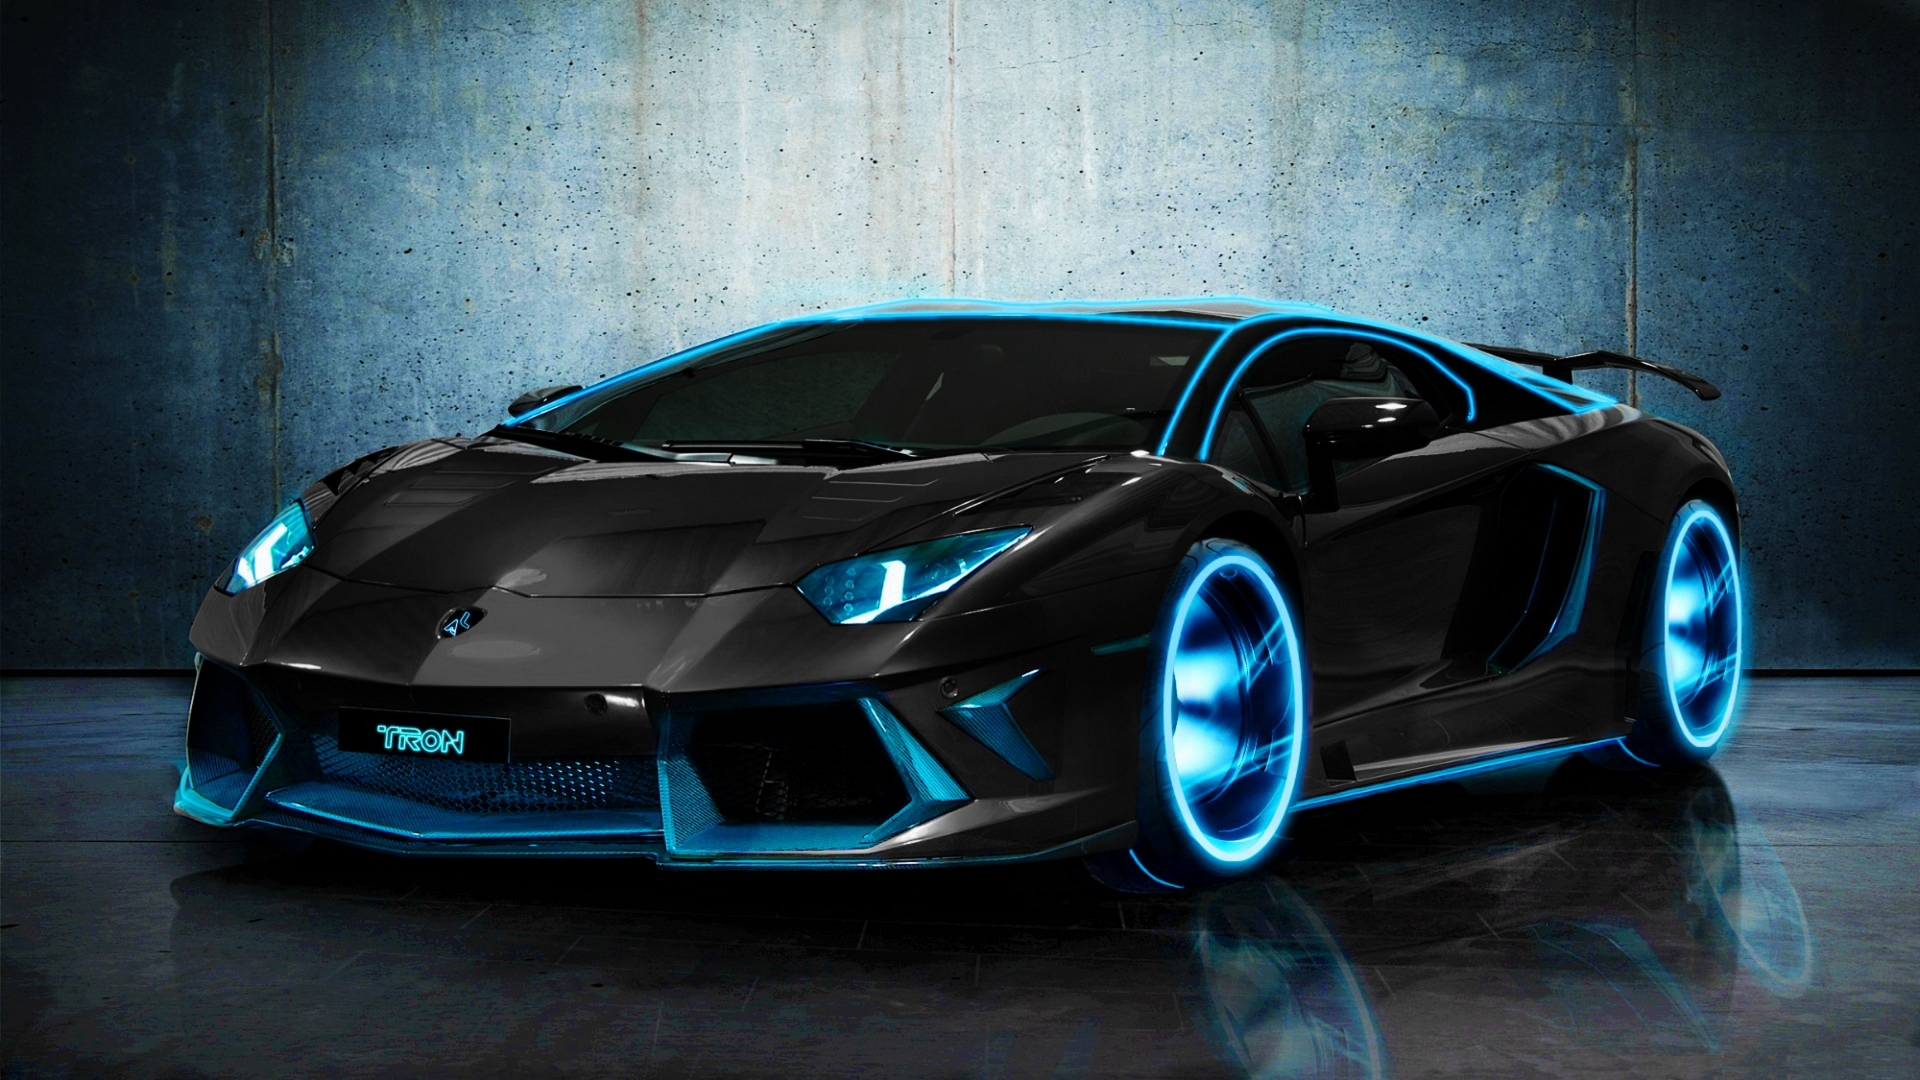 Tron Style Lamborghini Aventador Wallpaper Hd Car Wallpapers Id